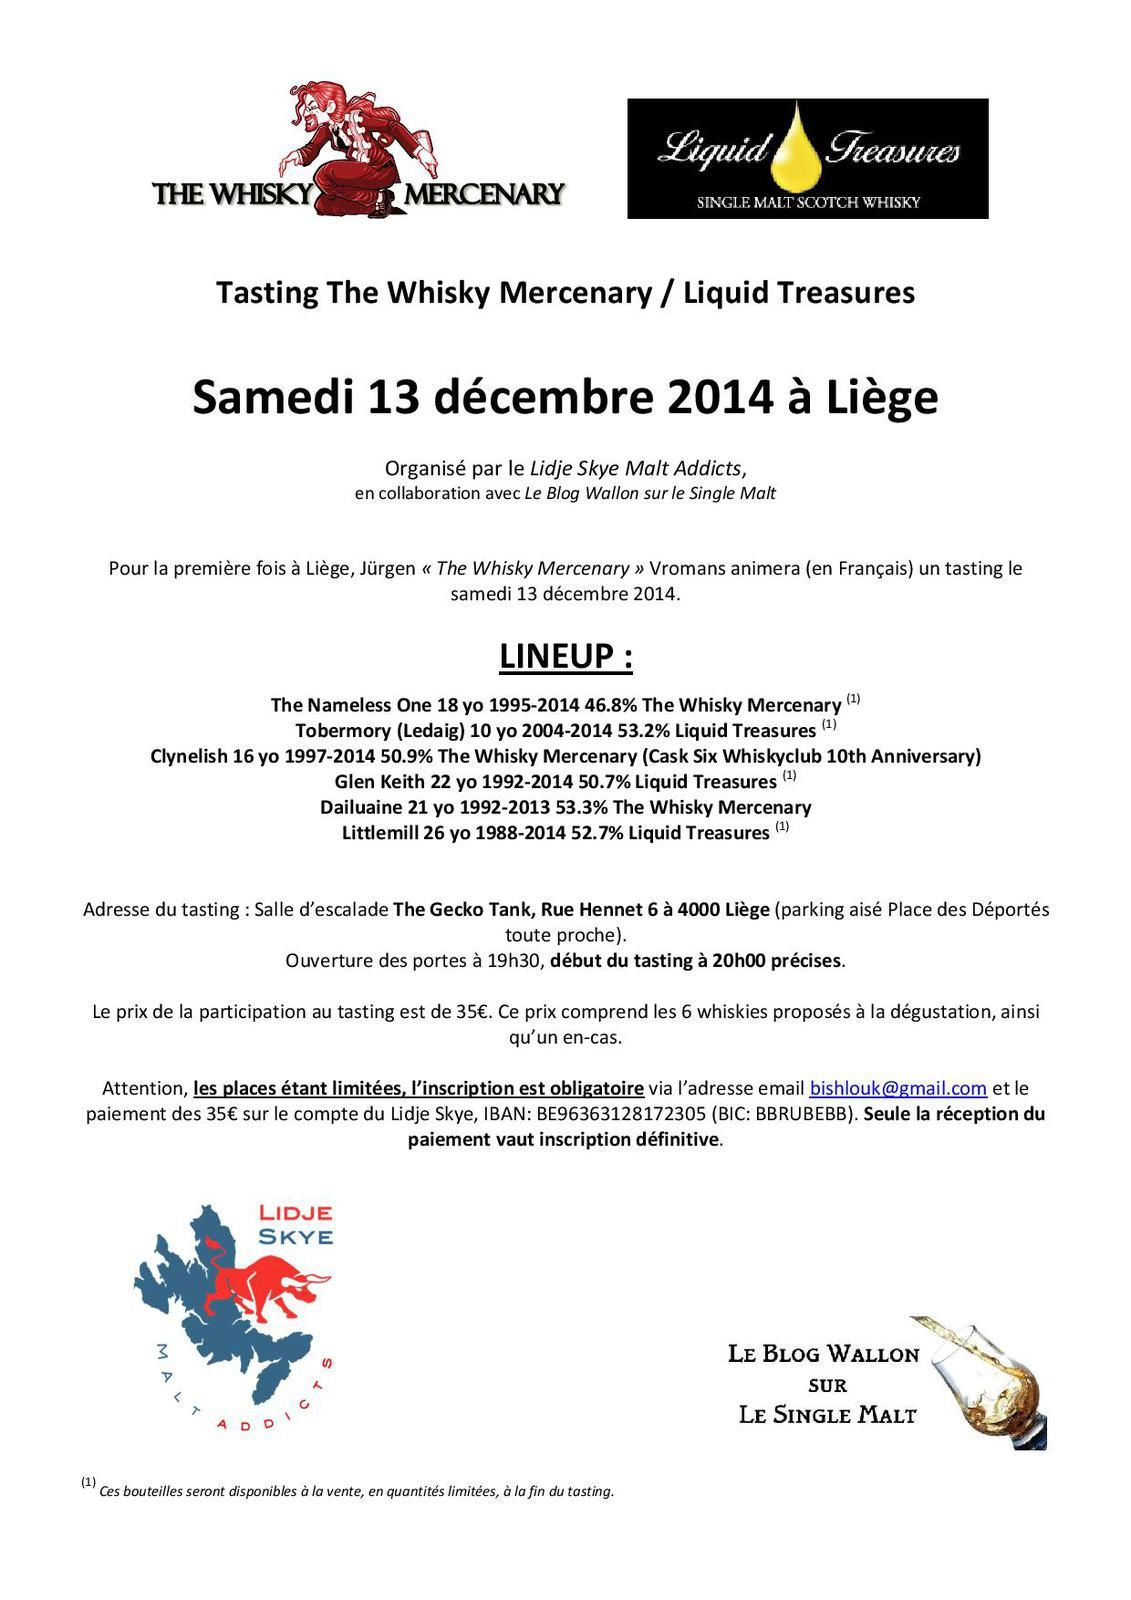 Samedi 13/12/2014: Tasting The Whisky Mercenary / Liquid Treasures à Liège